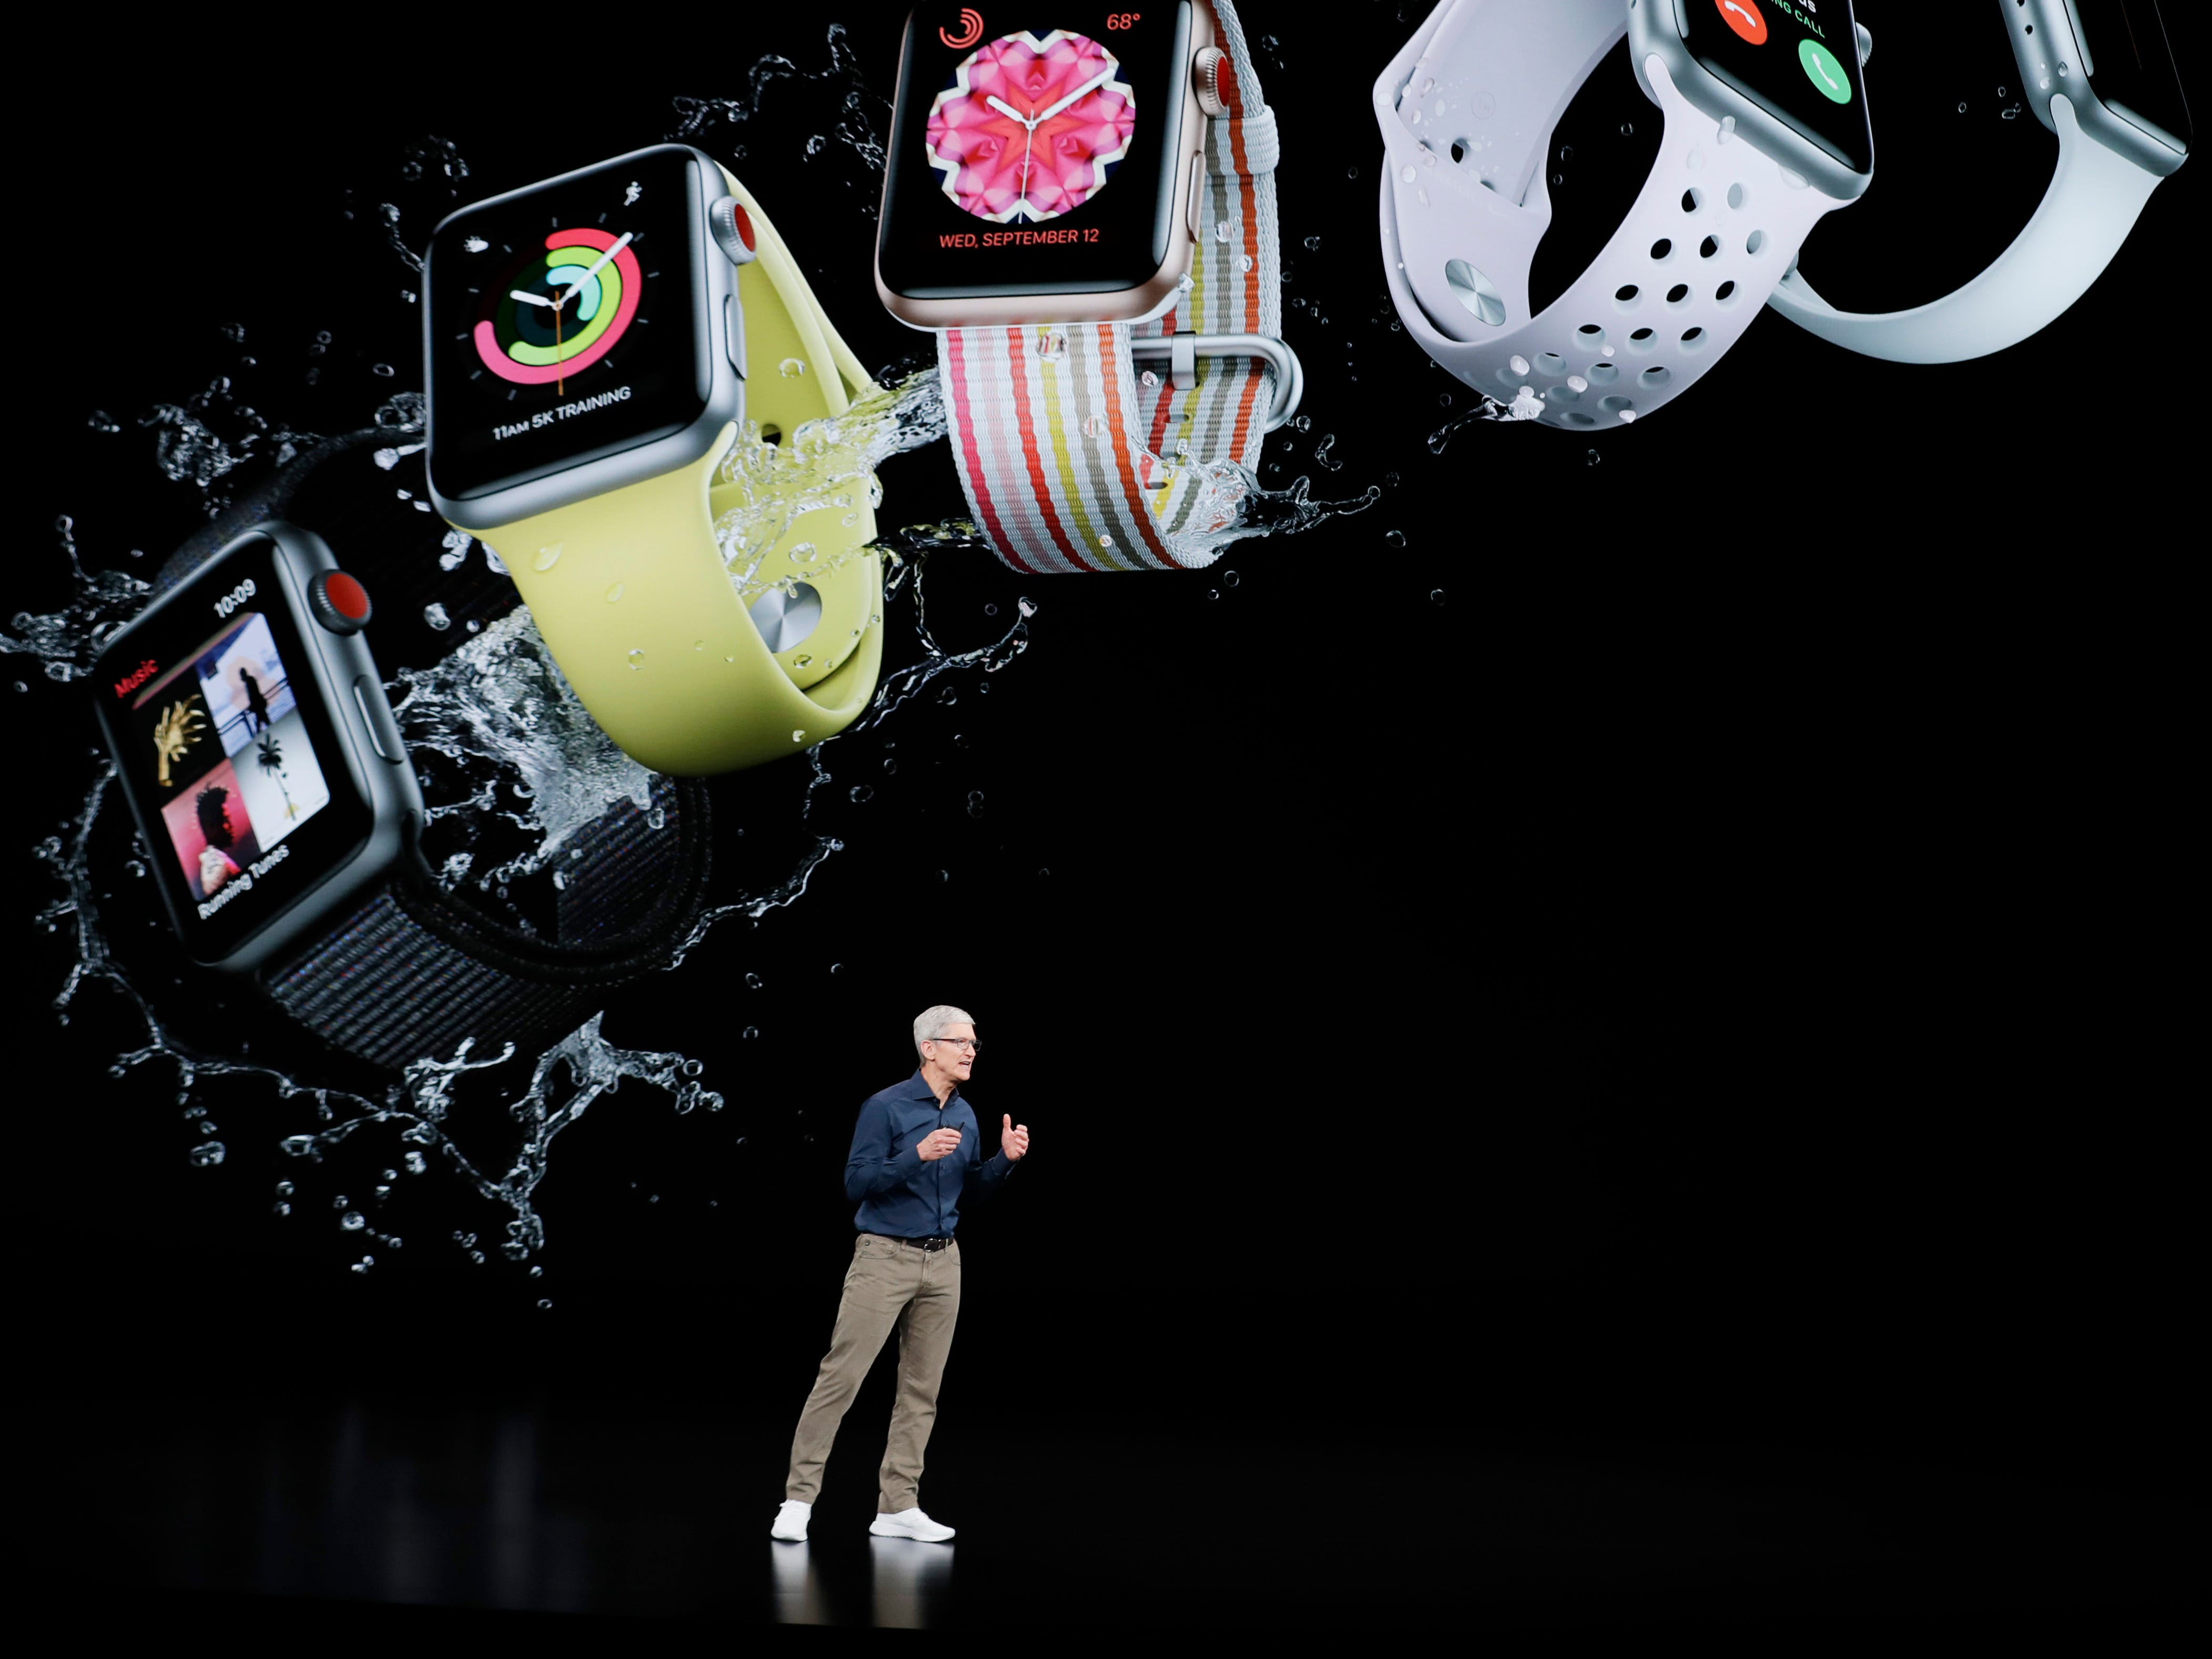 Apple CEO Tim Cook speaks about the Apple Watch at the Steve Jobs Theater during an event to announce new Apple products Wednesday, Sept. 12, 2018, in Cupertino, Calif.